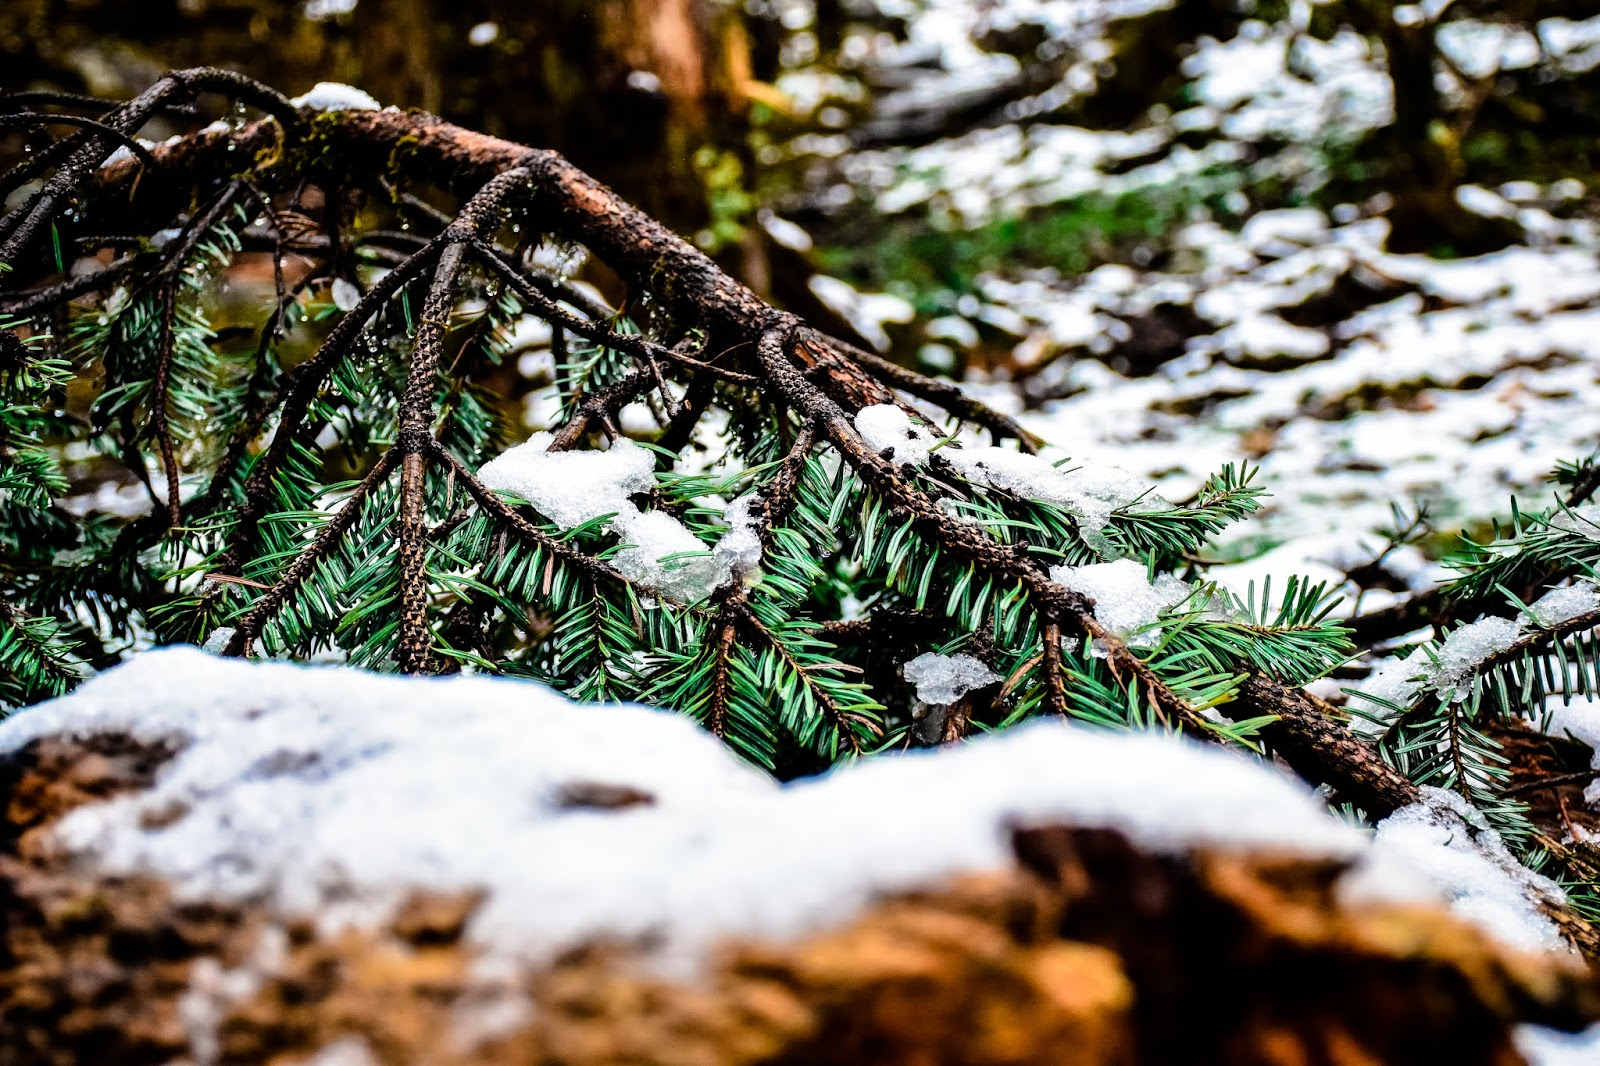 Ice flakes on pine cones: Photo by Jayashree Sengupta @DoiBedouin